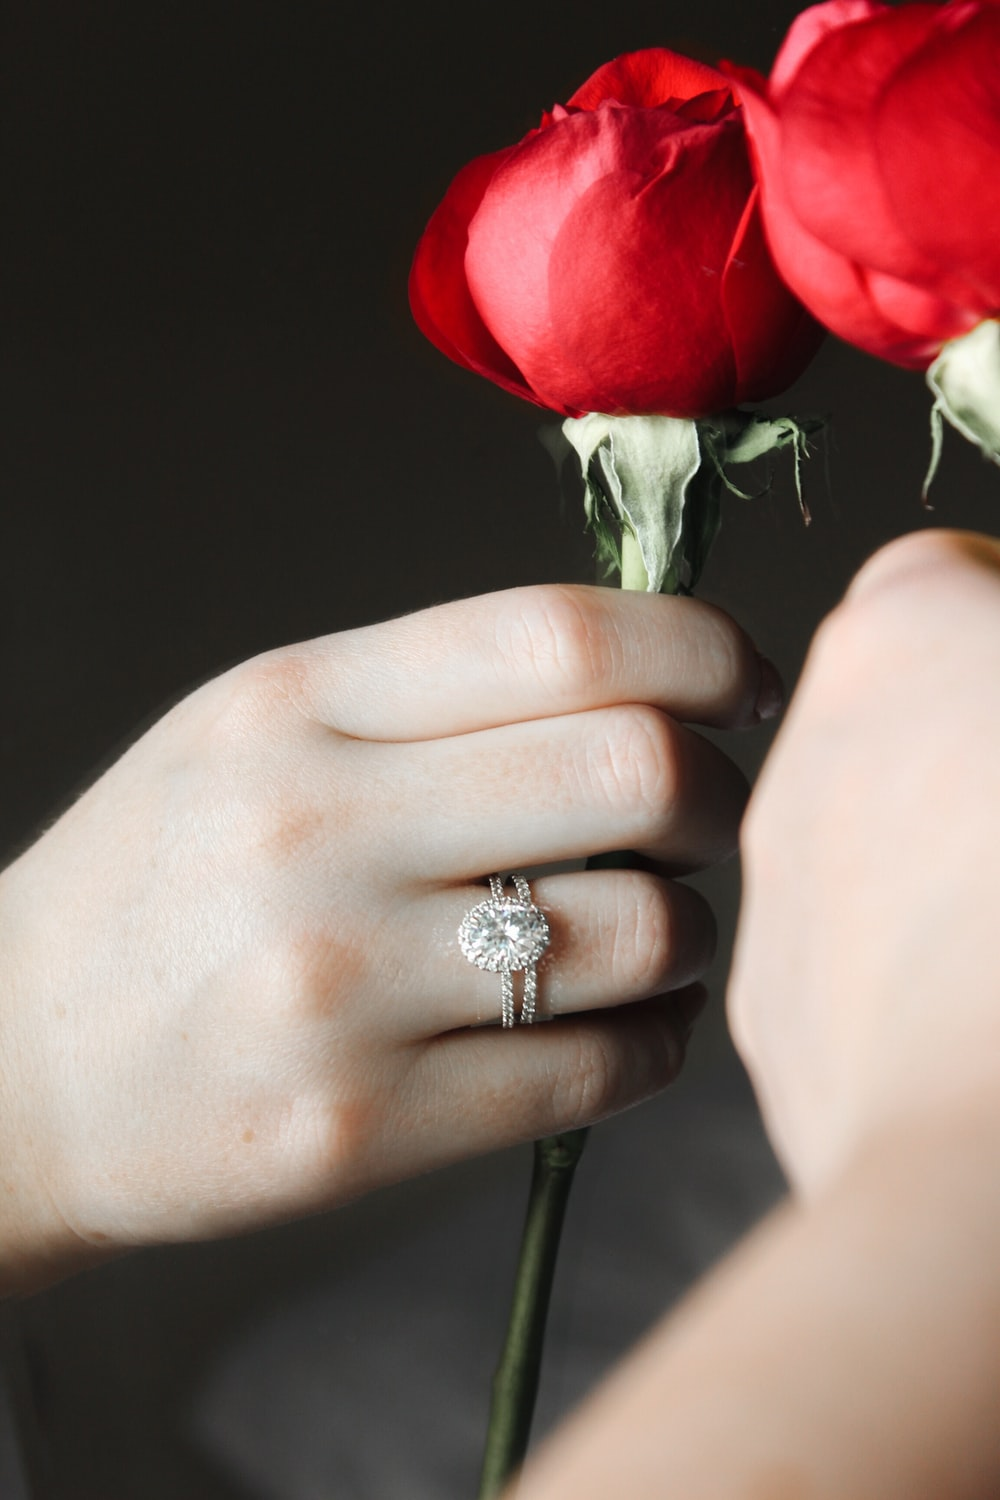 silver diamond ring on persons hand